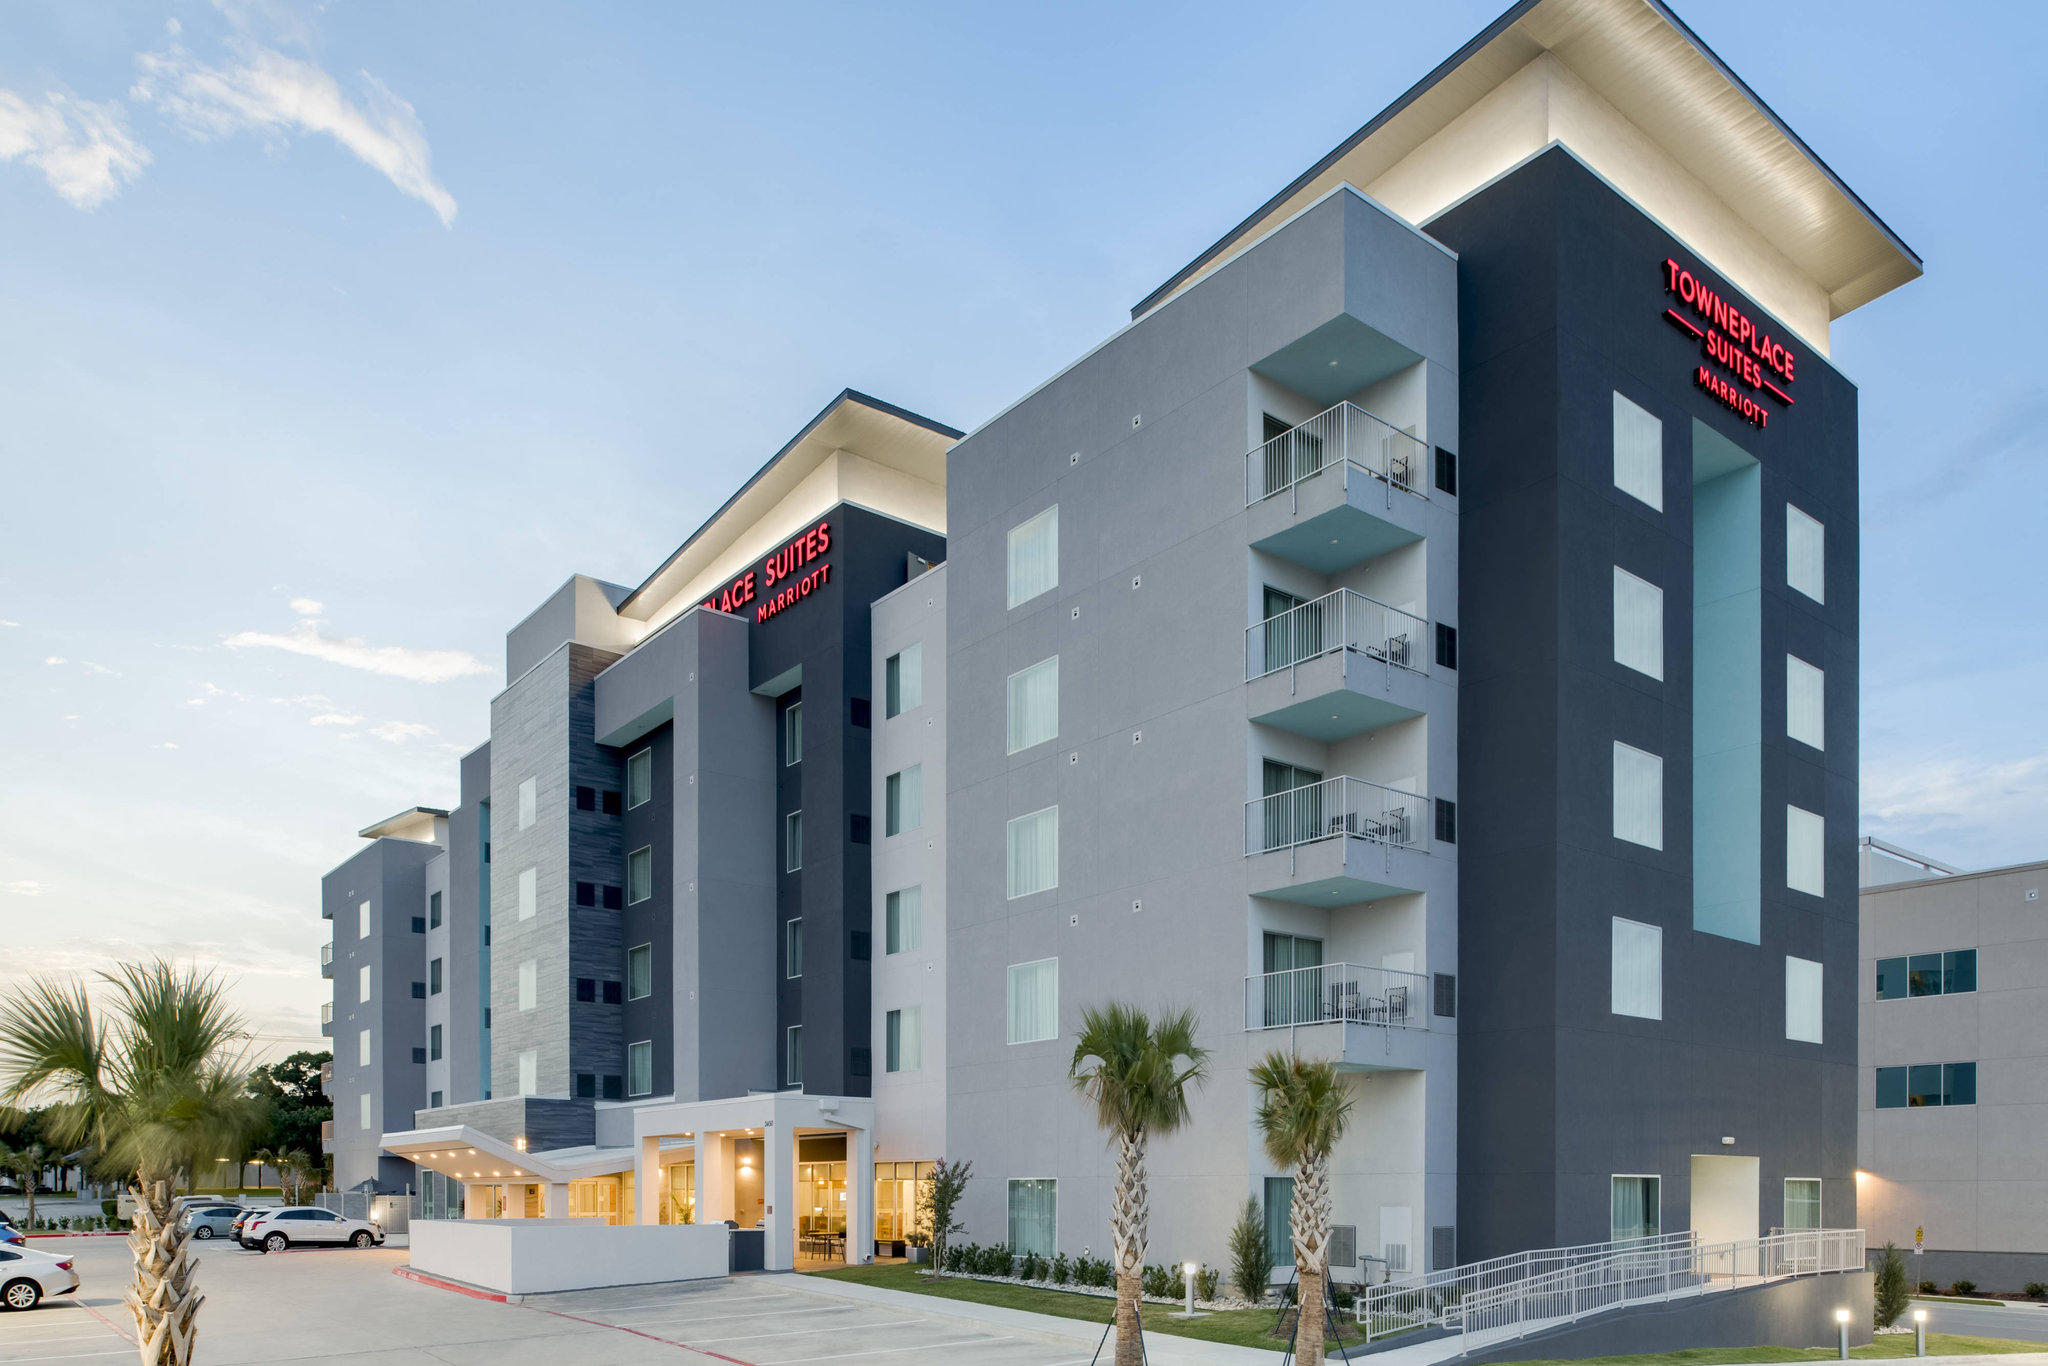 TownePlace Suites by Marriott Fort Worth University Area/Medical Center